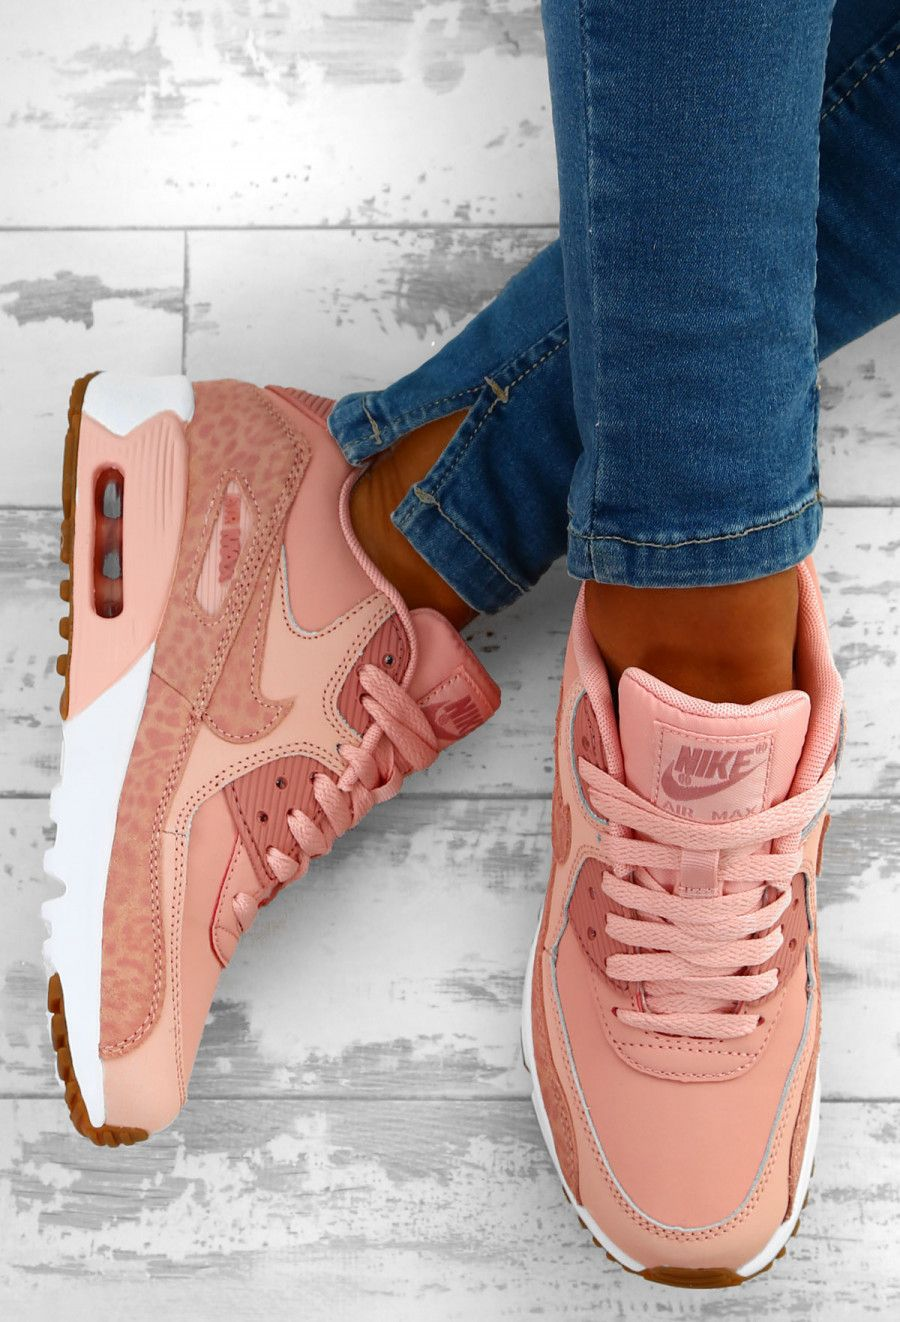 Nike Air Max 90 Pink Leopard Trainers - UK 3  14e1a633e375